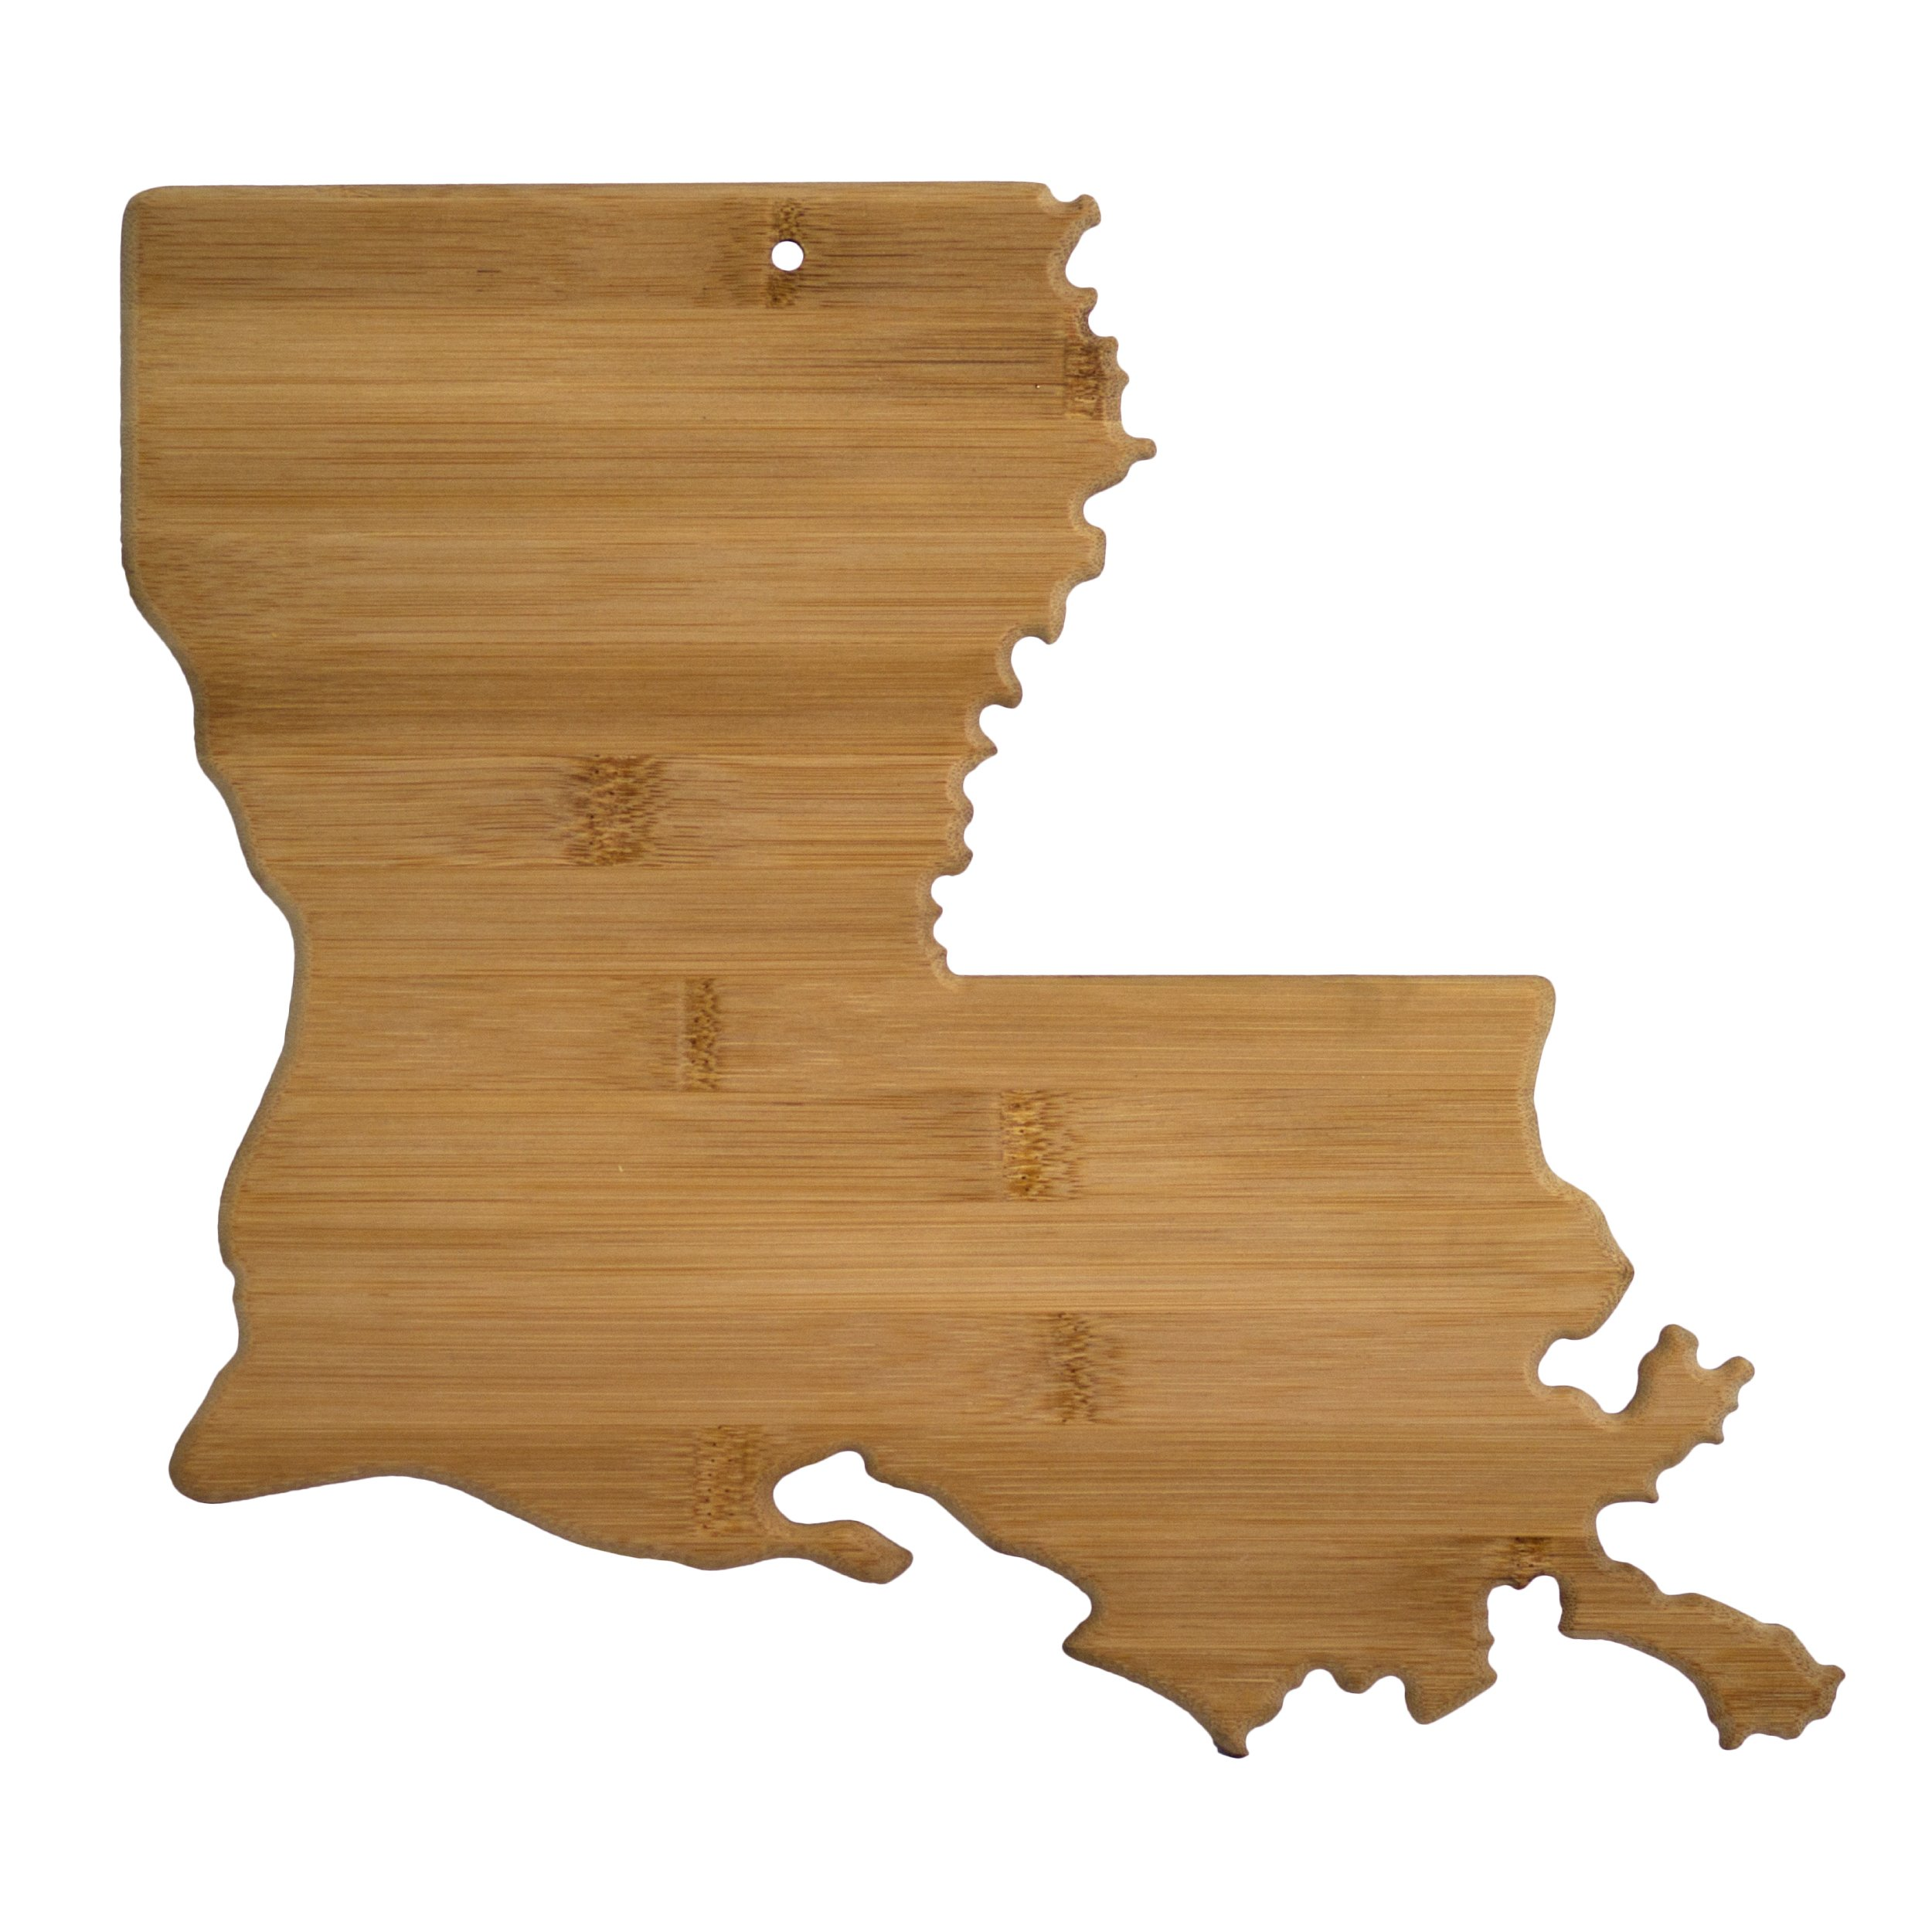 """Totally Bamboo State Cutting & Serving Board – """"LOUISIANA"""", 100% Organic Bamboo Cutting Board for Cooking, Entertaining, Décor and Gifts. Designed in the USA!"""